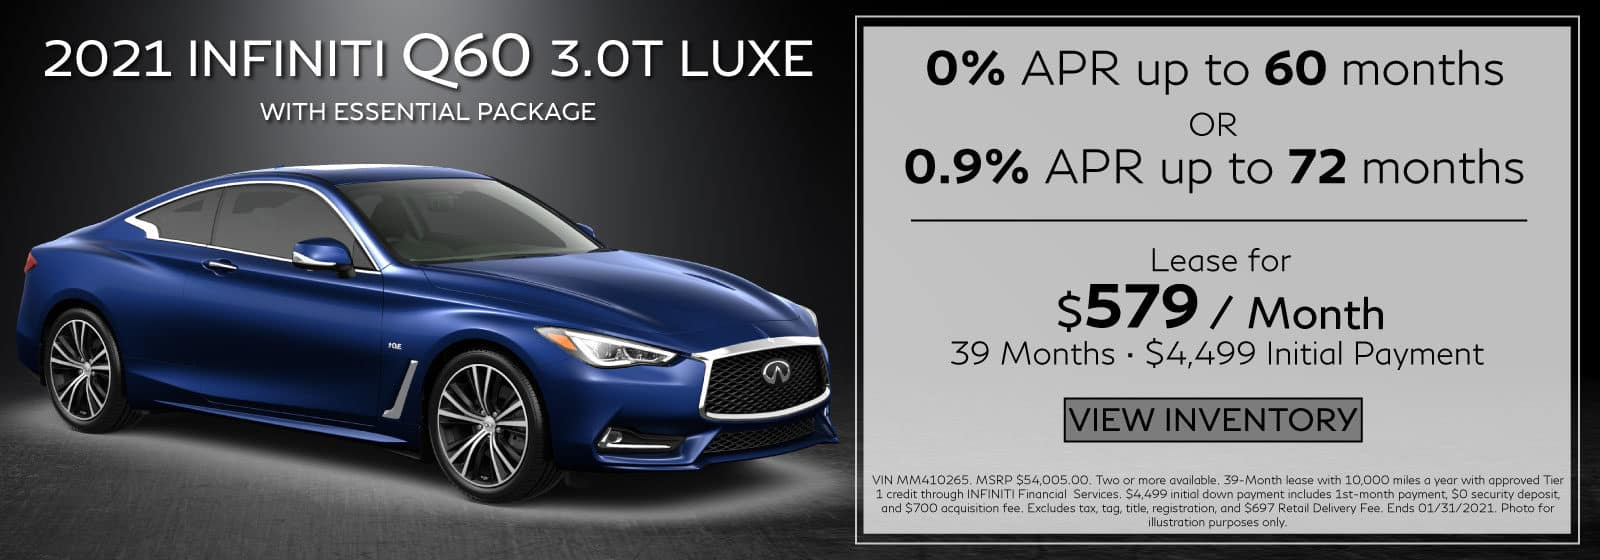 2021 Q60 3.0t LUXE. $579/mo for 39 months. $4,499 Initial Payment